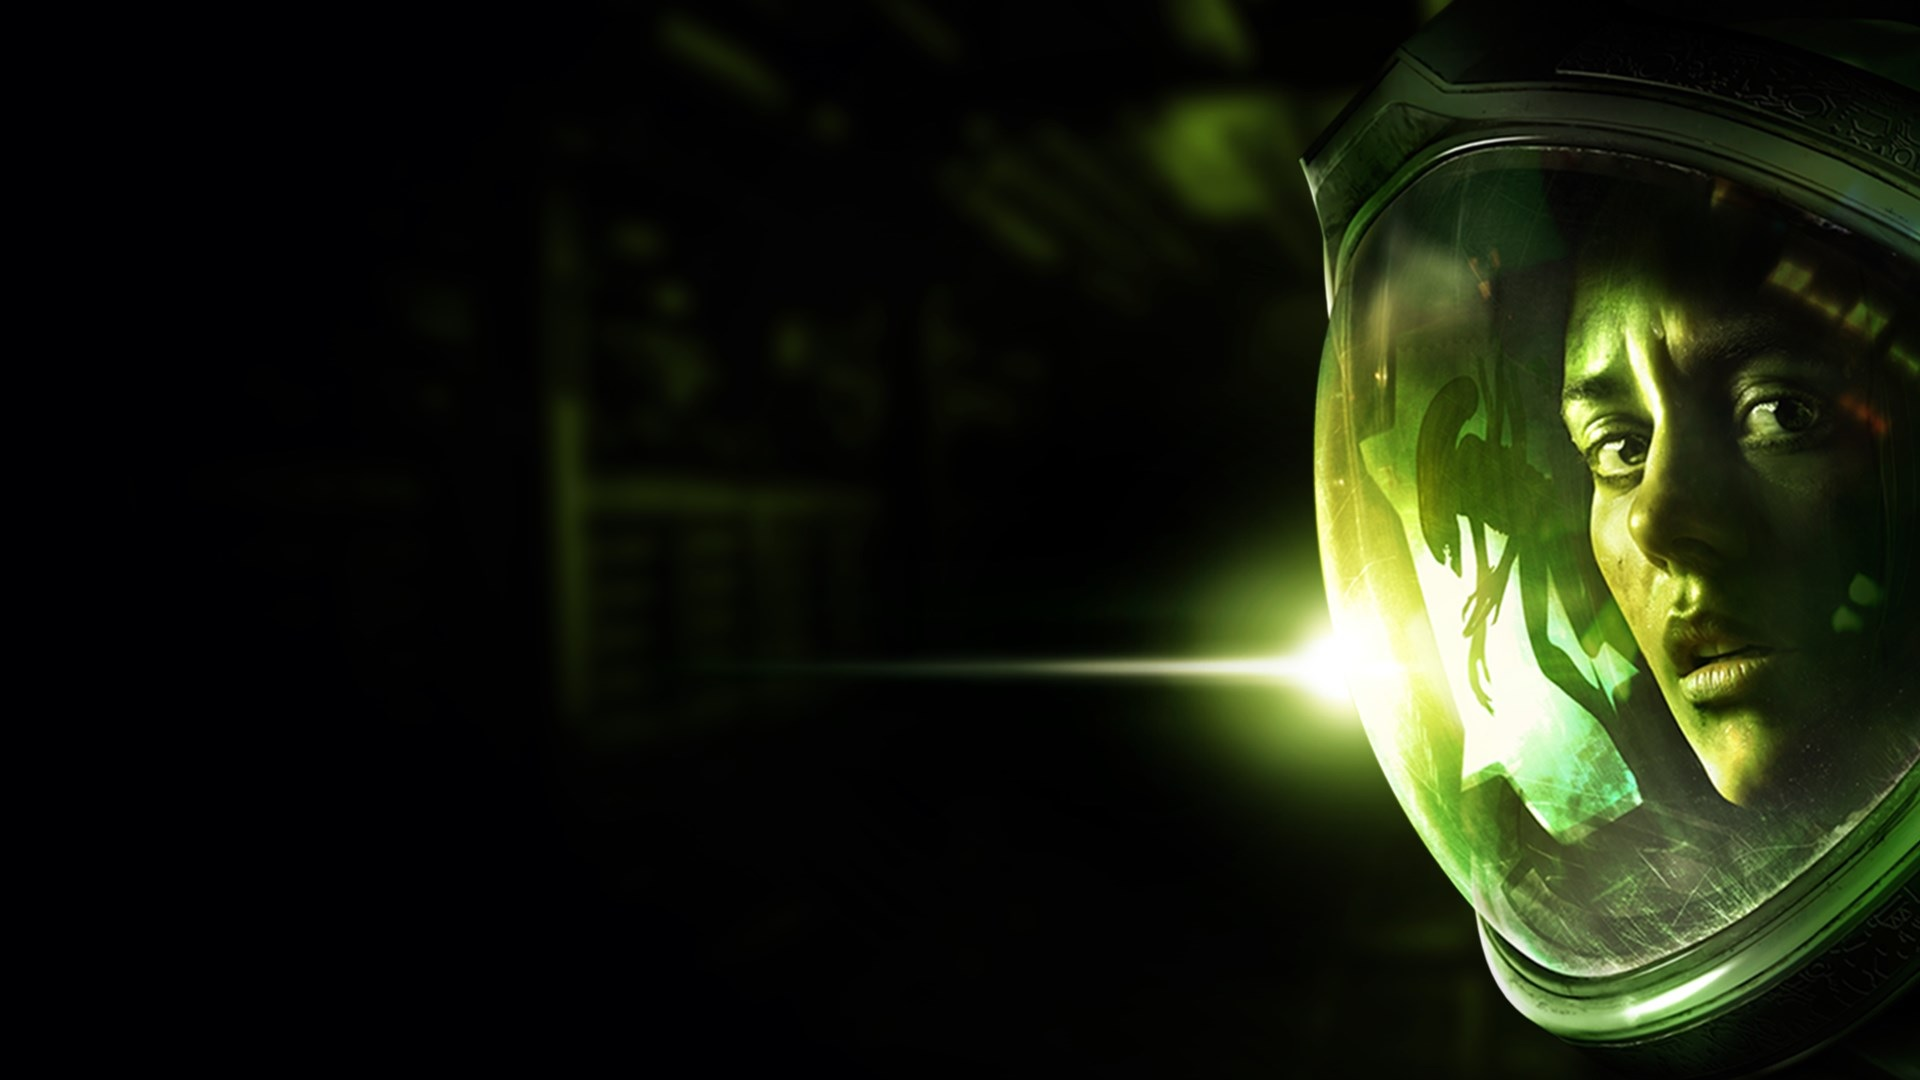 Holy cow, Alien: Isolation will be on Switch screenshot